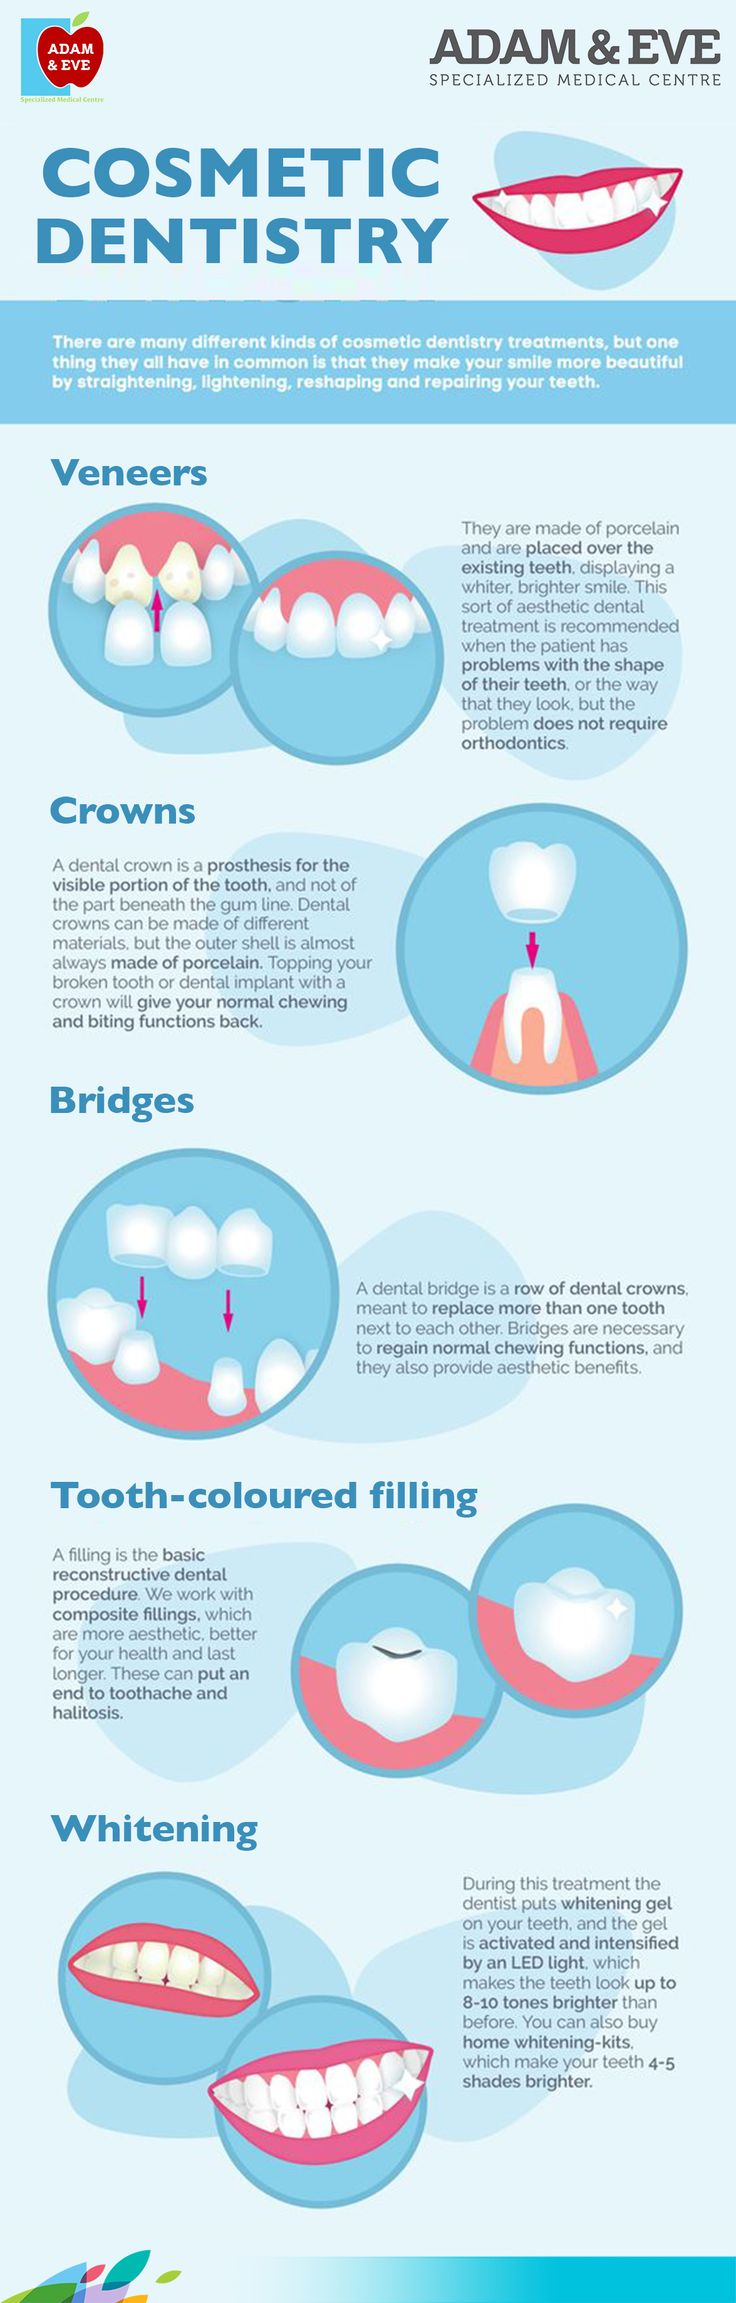 Cosmetic Dentistry#dental  #cosmeticsurgery  #dentistry #dentalcare   ADAM & EVE Specialized Medical Centre Near Royal Rose Hotel Pink Building (501) Electra Street, Abu Dhabi, UAE    Contact Us : +971 2 676 7366 / +971 52 1555 366 / 055  1555366    Email : info@aesmc.com visit us - http://aesmc.com